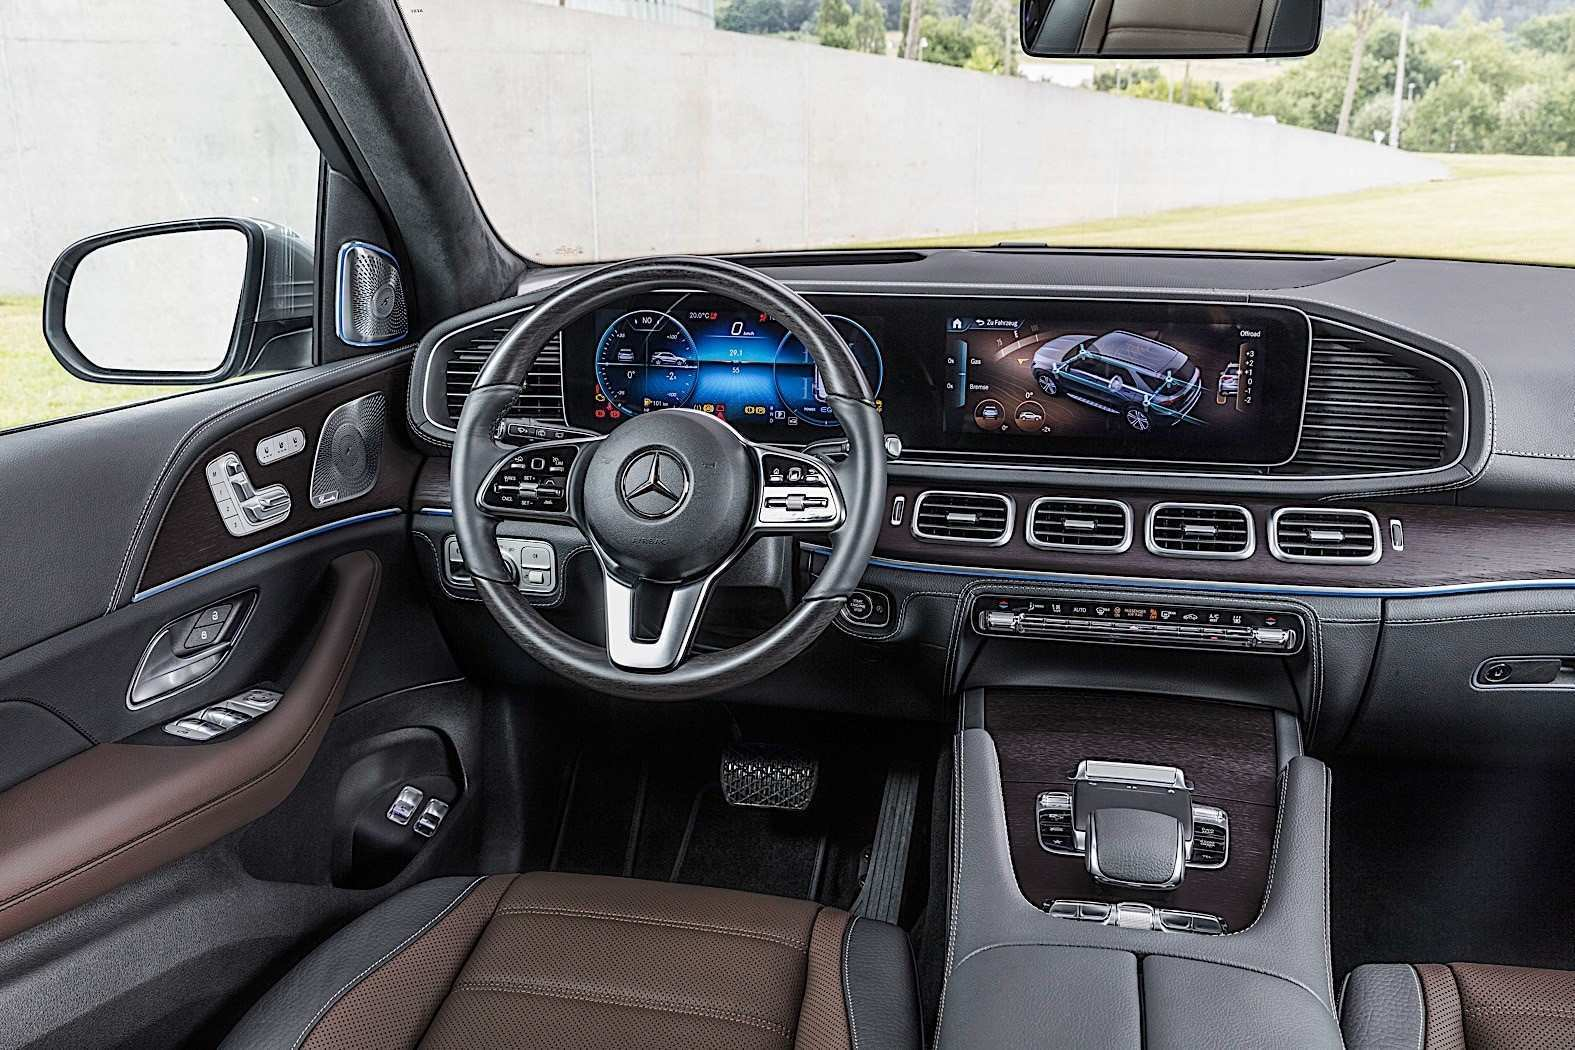 47 Best Review Gle Mercedes 2019 Model by Gle Mercedes 2019